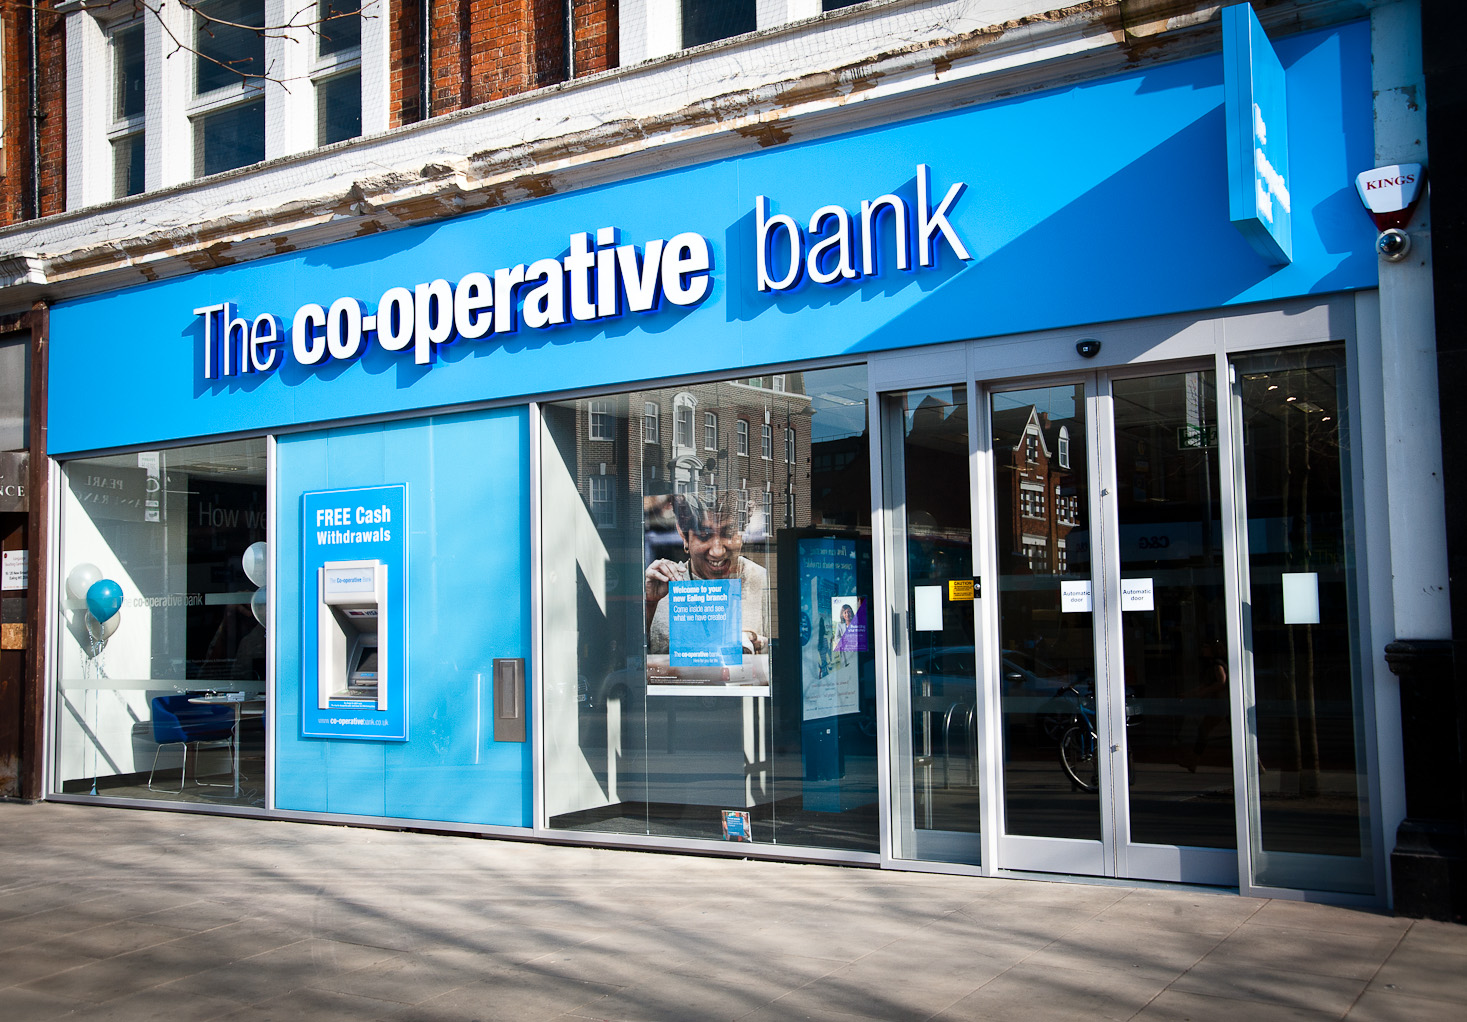 The_Co-operative_Bank_-_Ealing_%289415463884%29.jpg?profile=RESIZE_710x